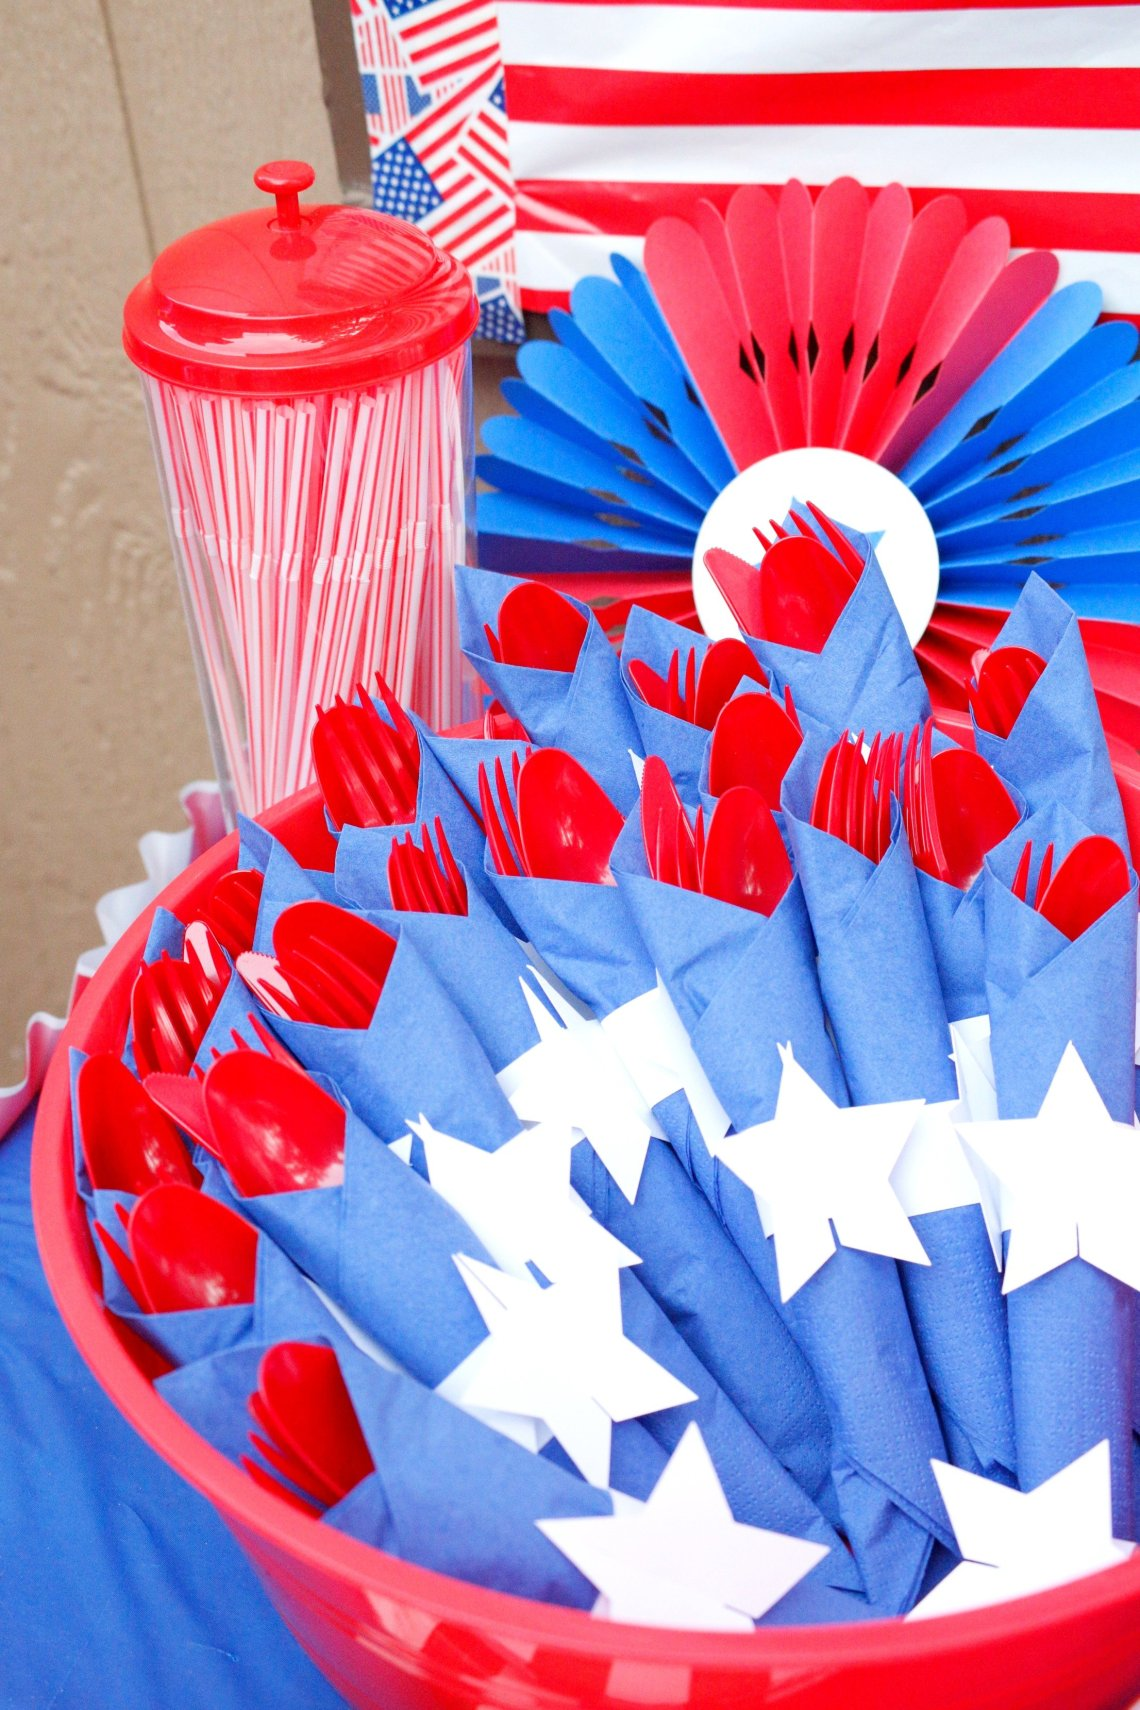 These festive DIY Patriotic napkin rings are super easy to make and add a fun decorative element to your red, white, and blue patriotic party.